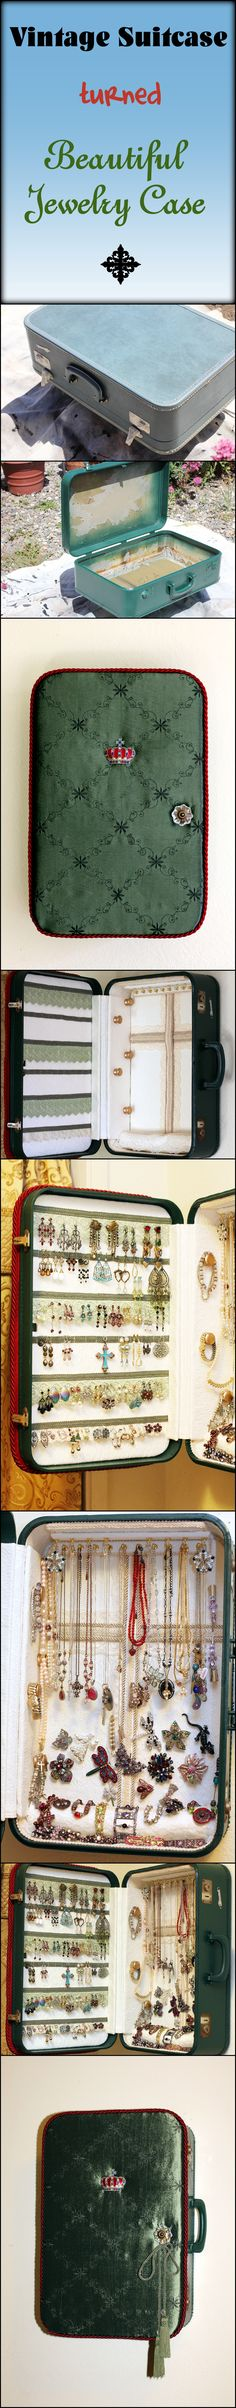 Vintage suitcase and Jewelry case. Can't wait to make the next jewelry suitcase!